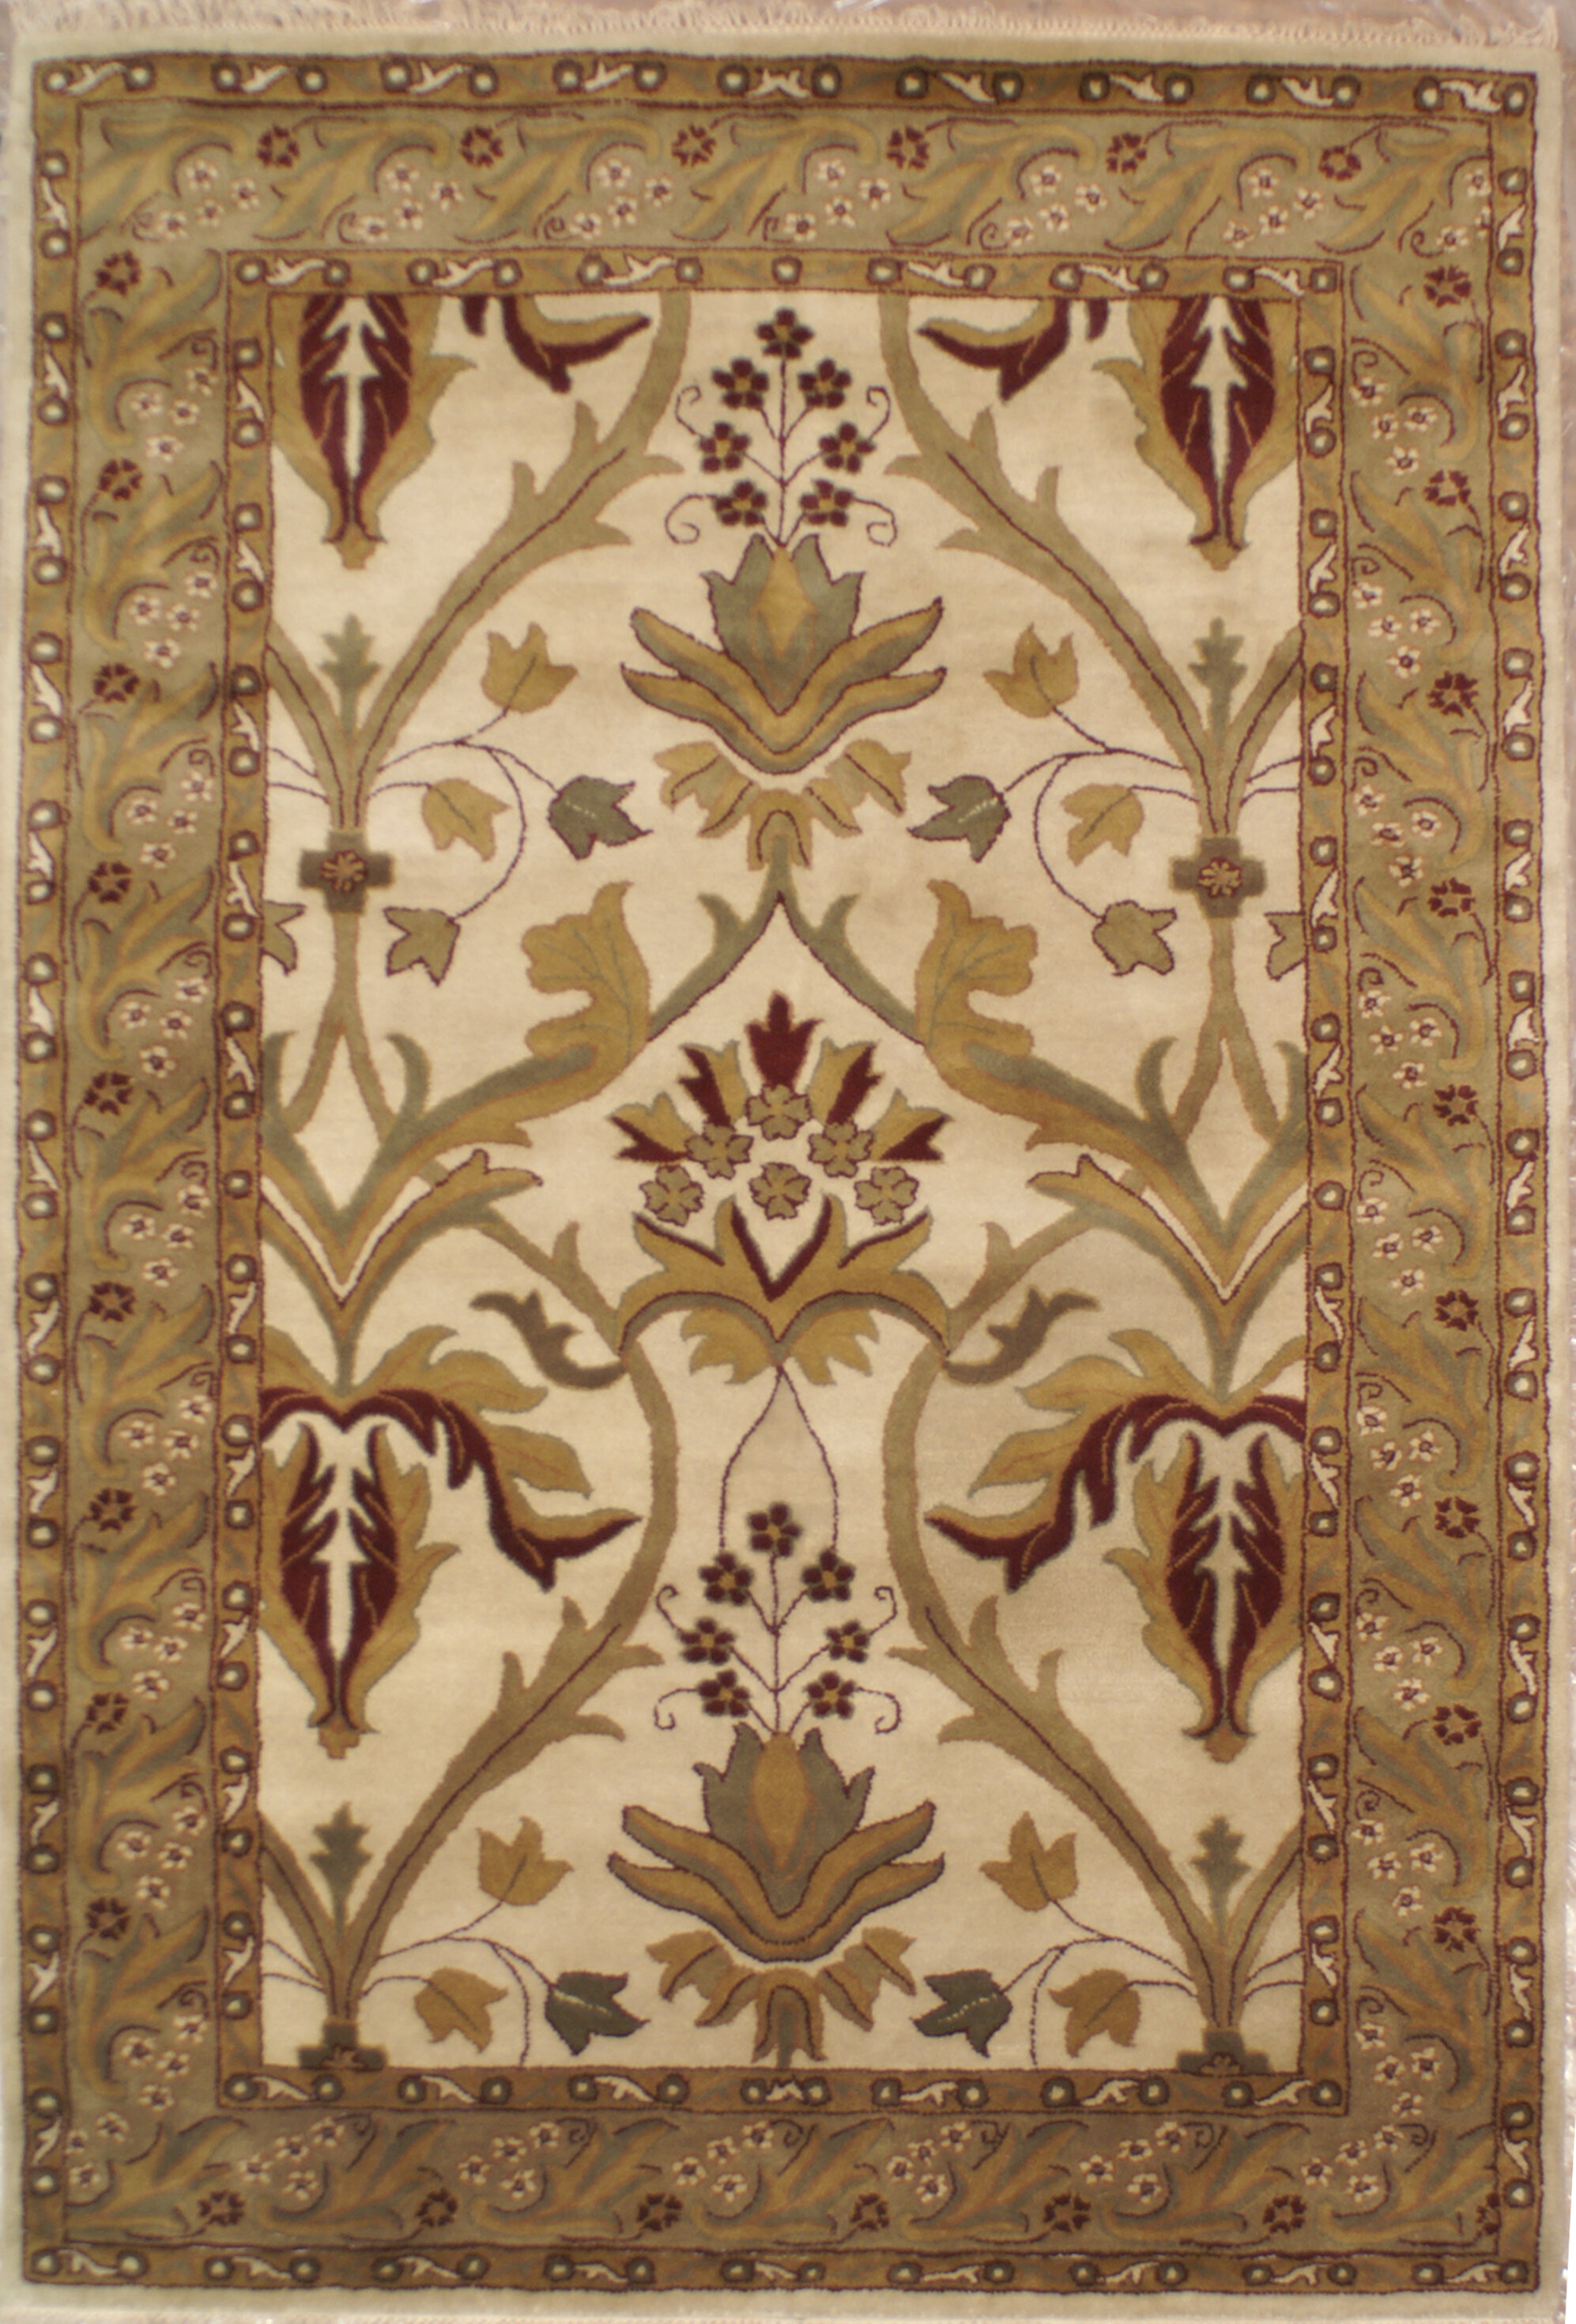 Crafts Antique Hand Tufted Wool